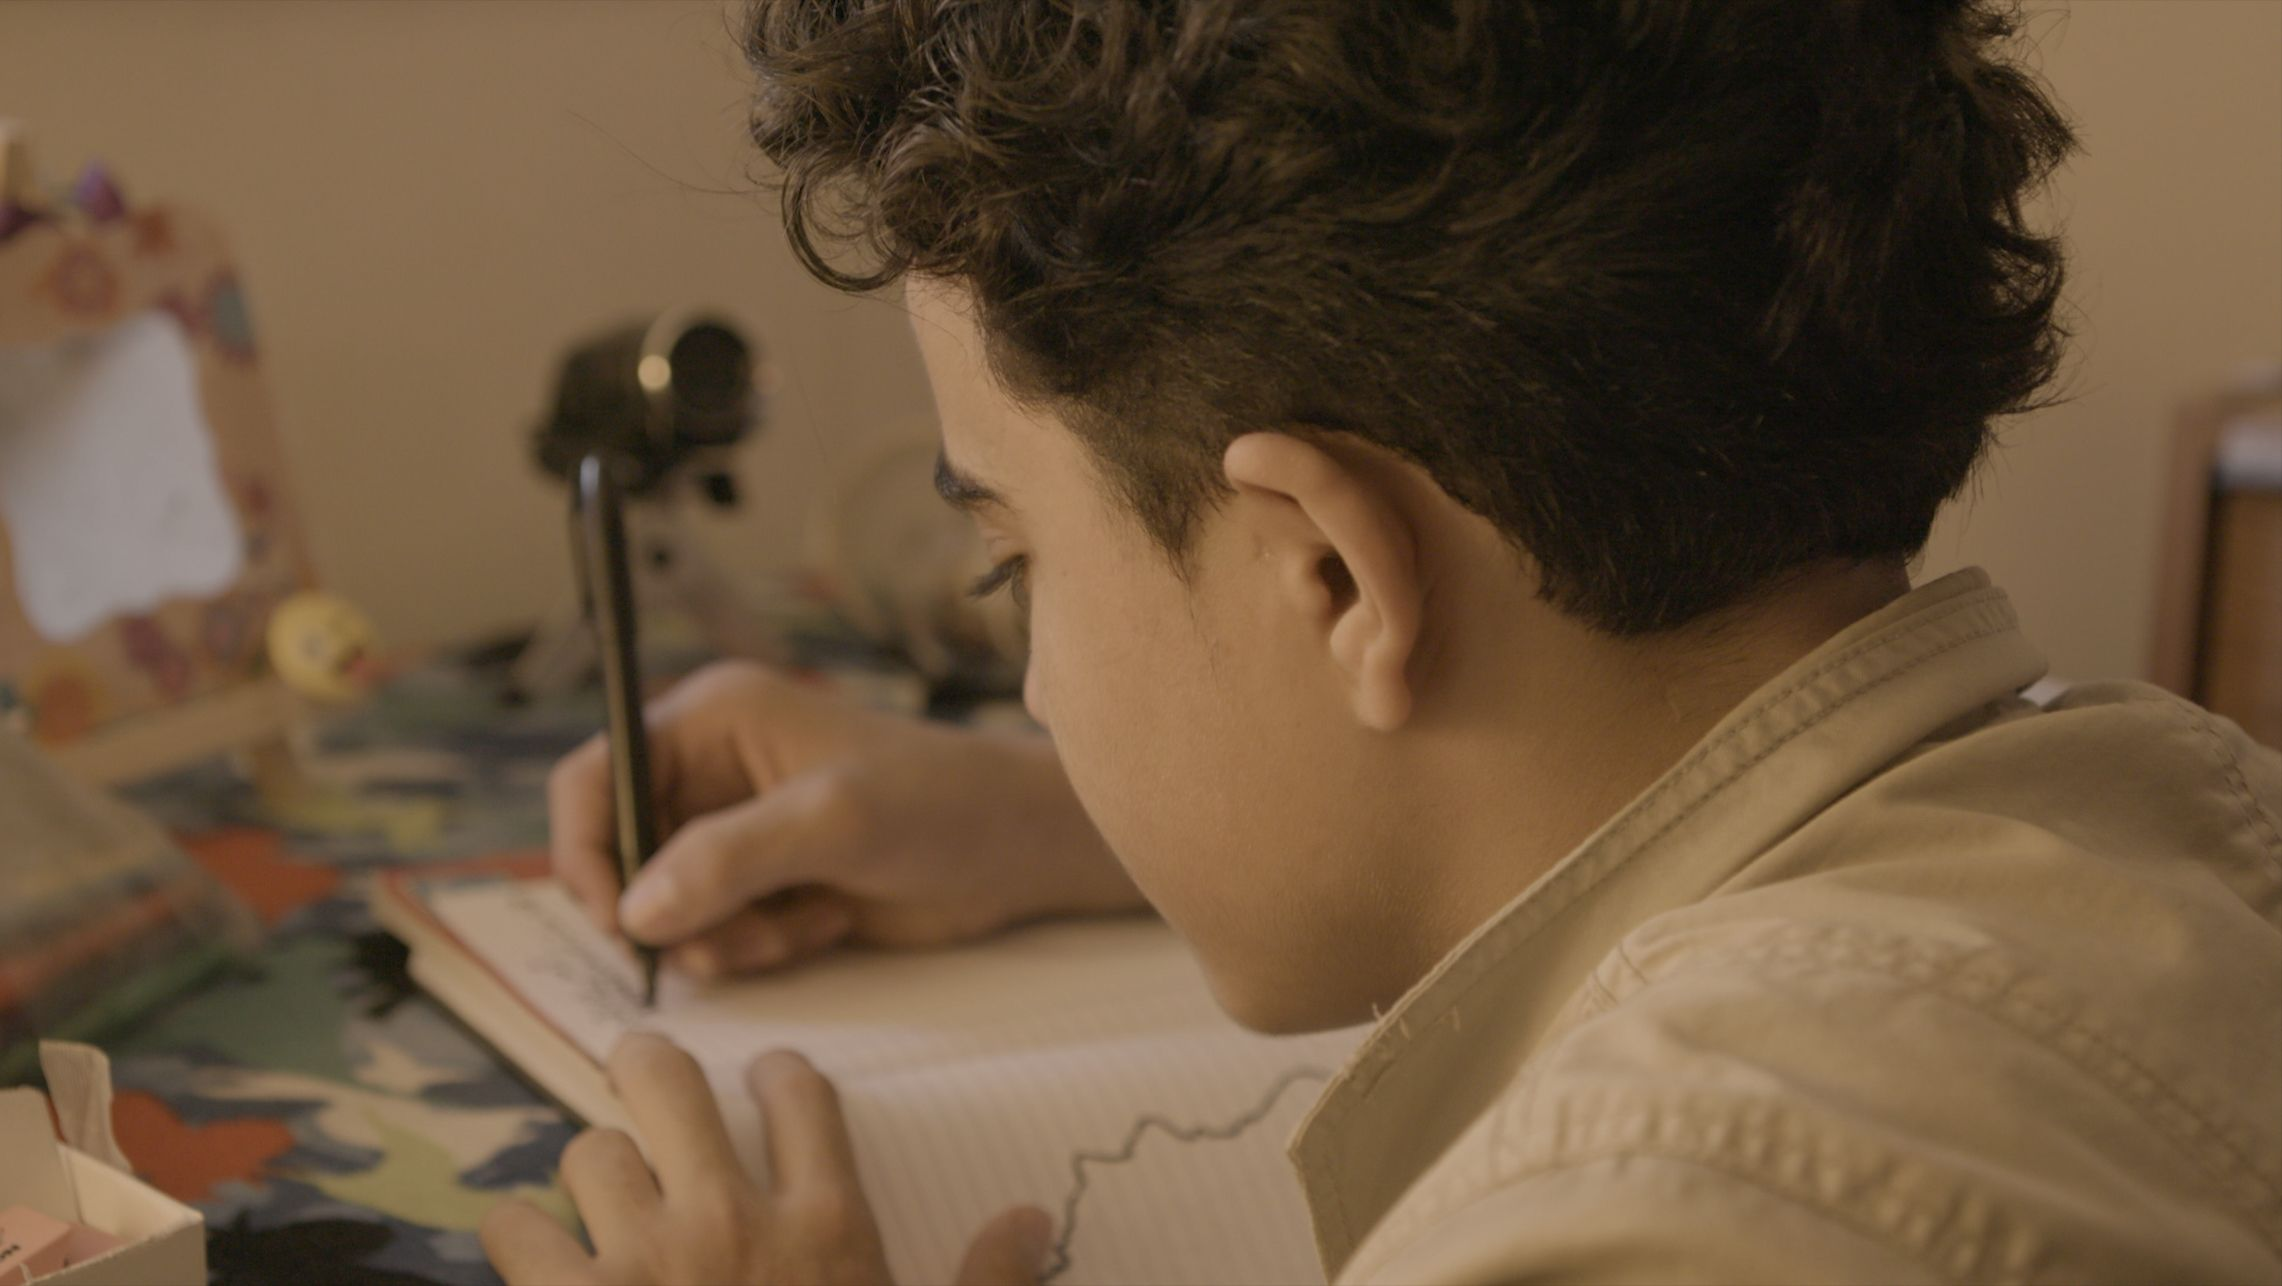 We Became Fragmentsfollows Syrian refugee Ibraheem Sarhan through his first week of 10th grade in Winnipeg. It's a story about loss, resilience, and one young man's identity as he adapts to a new country while his home is at war.